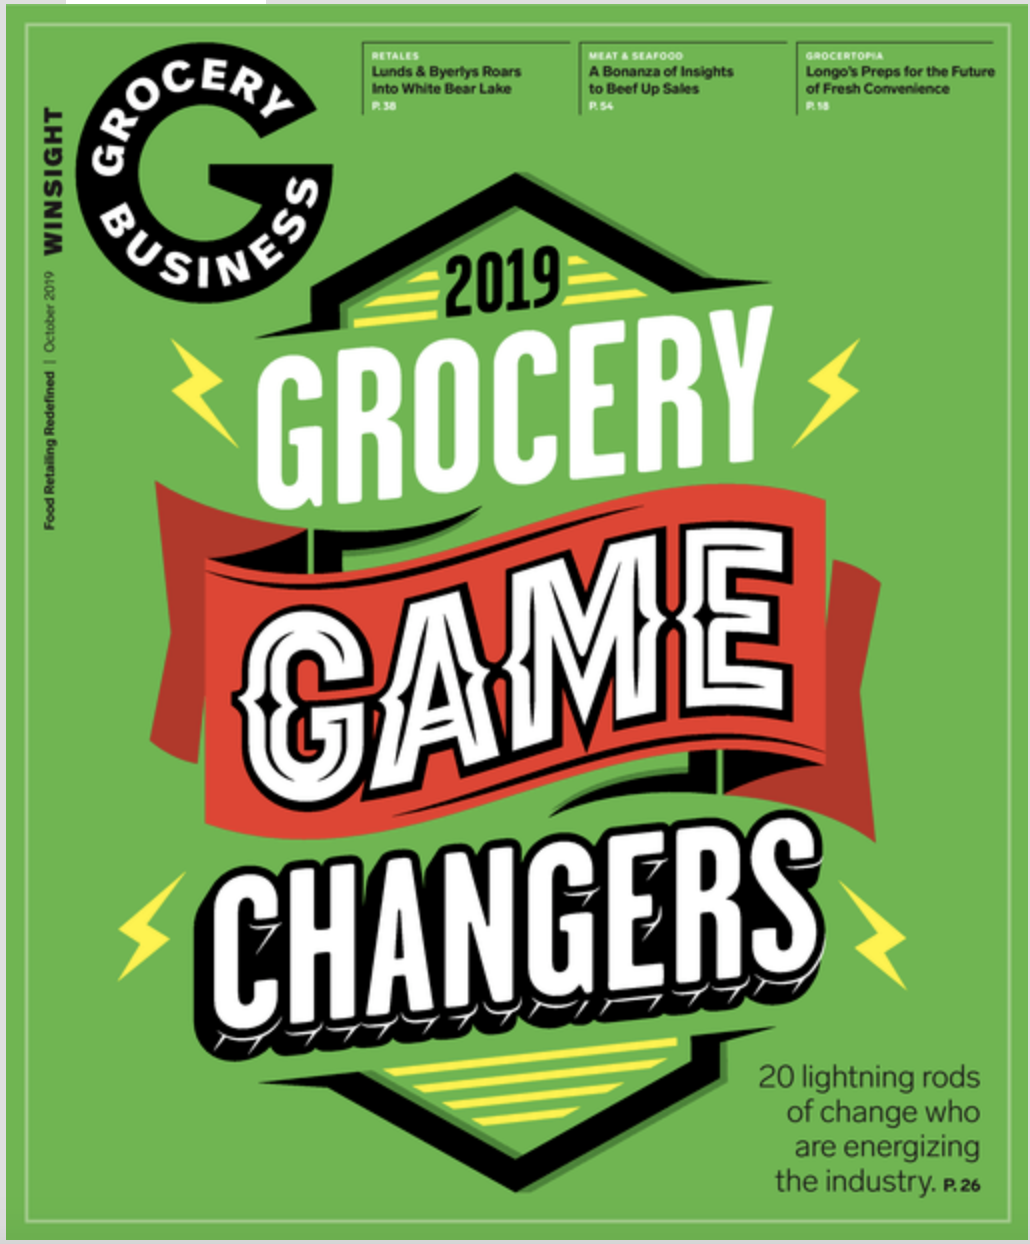 Winsight Grocery Business Magazine October 2019 Issue